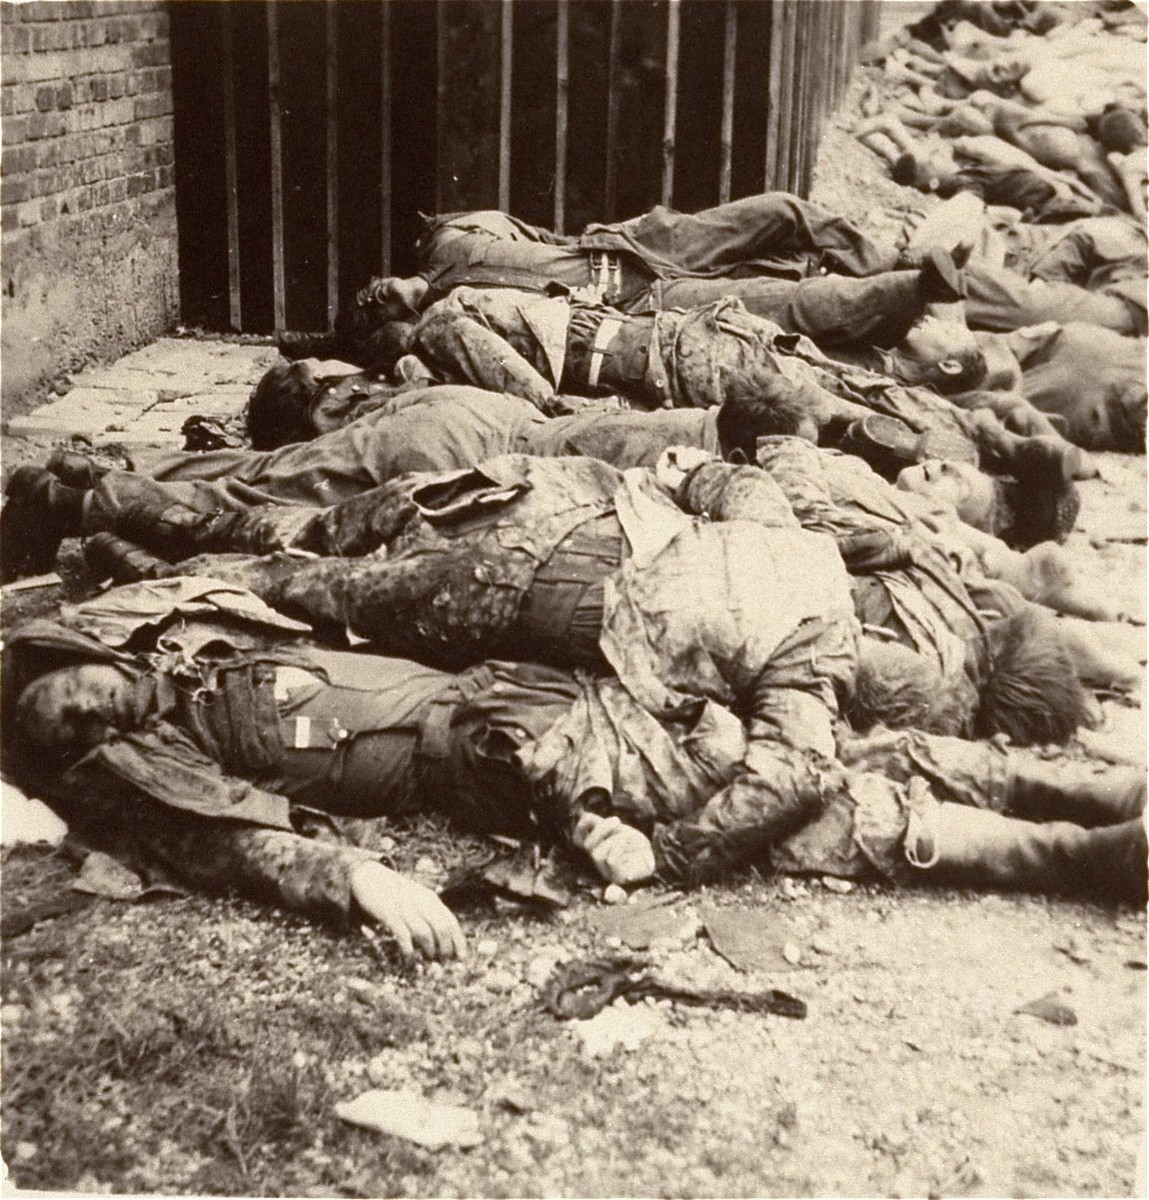 The bodies of SS personnel who were executed by U.S. troops during the liberation of Dachau.